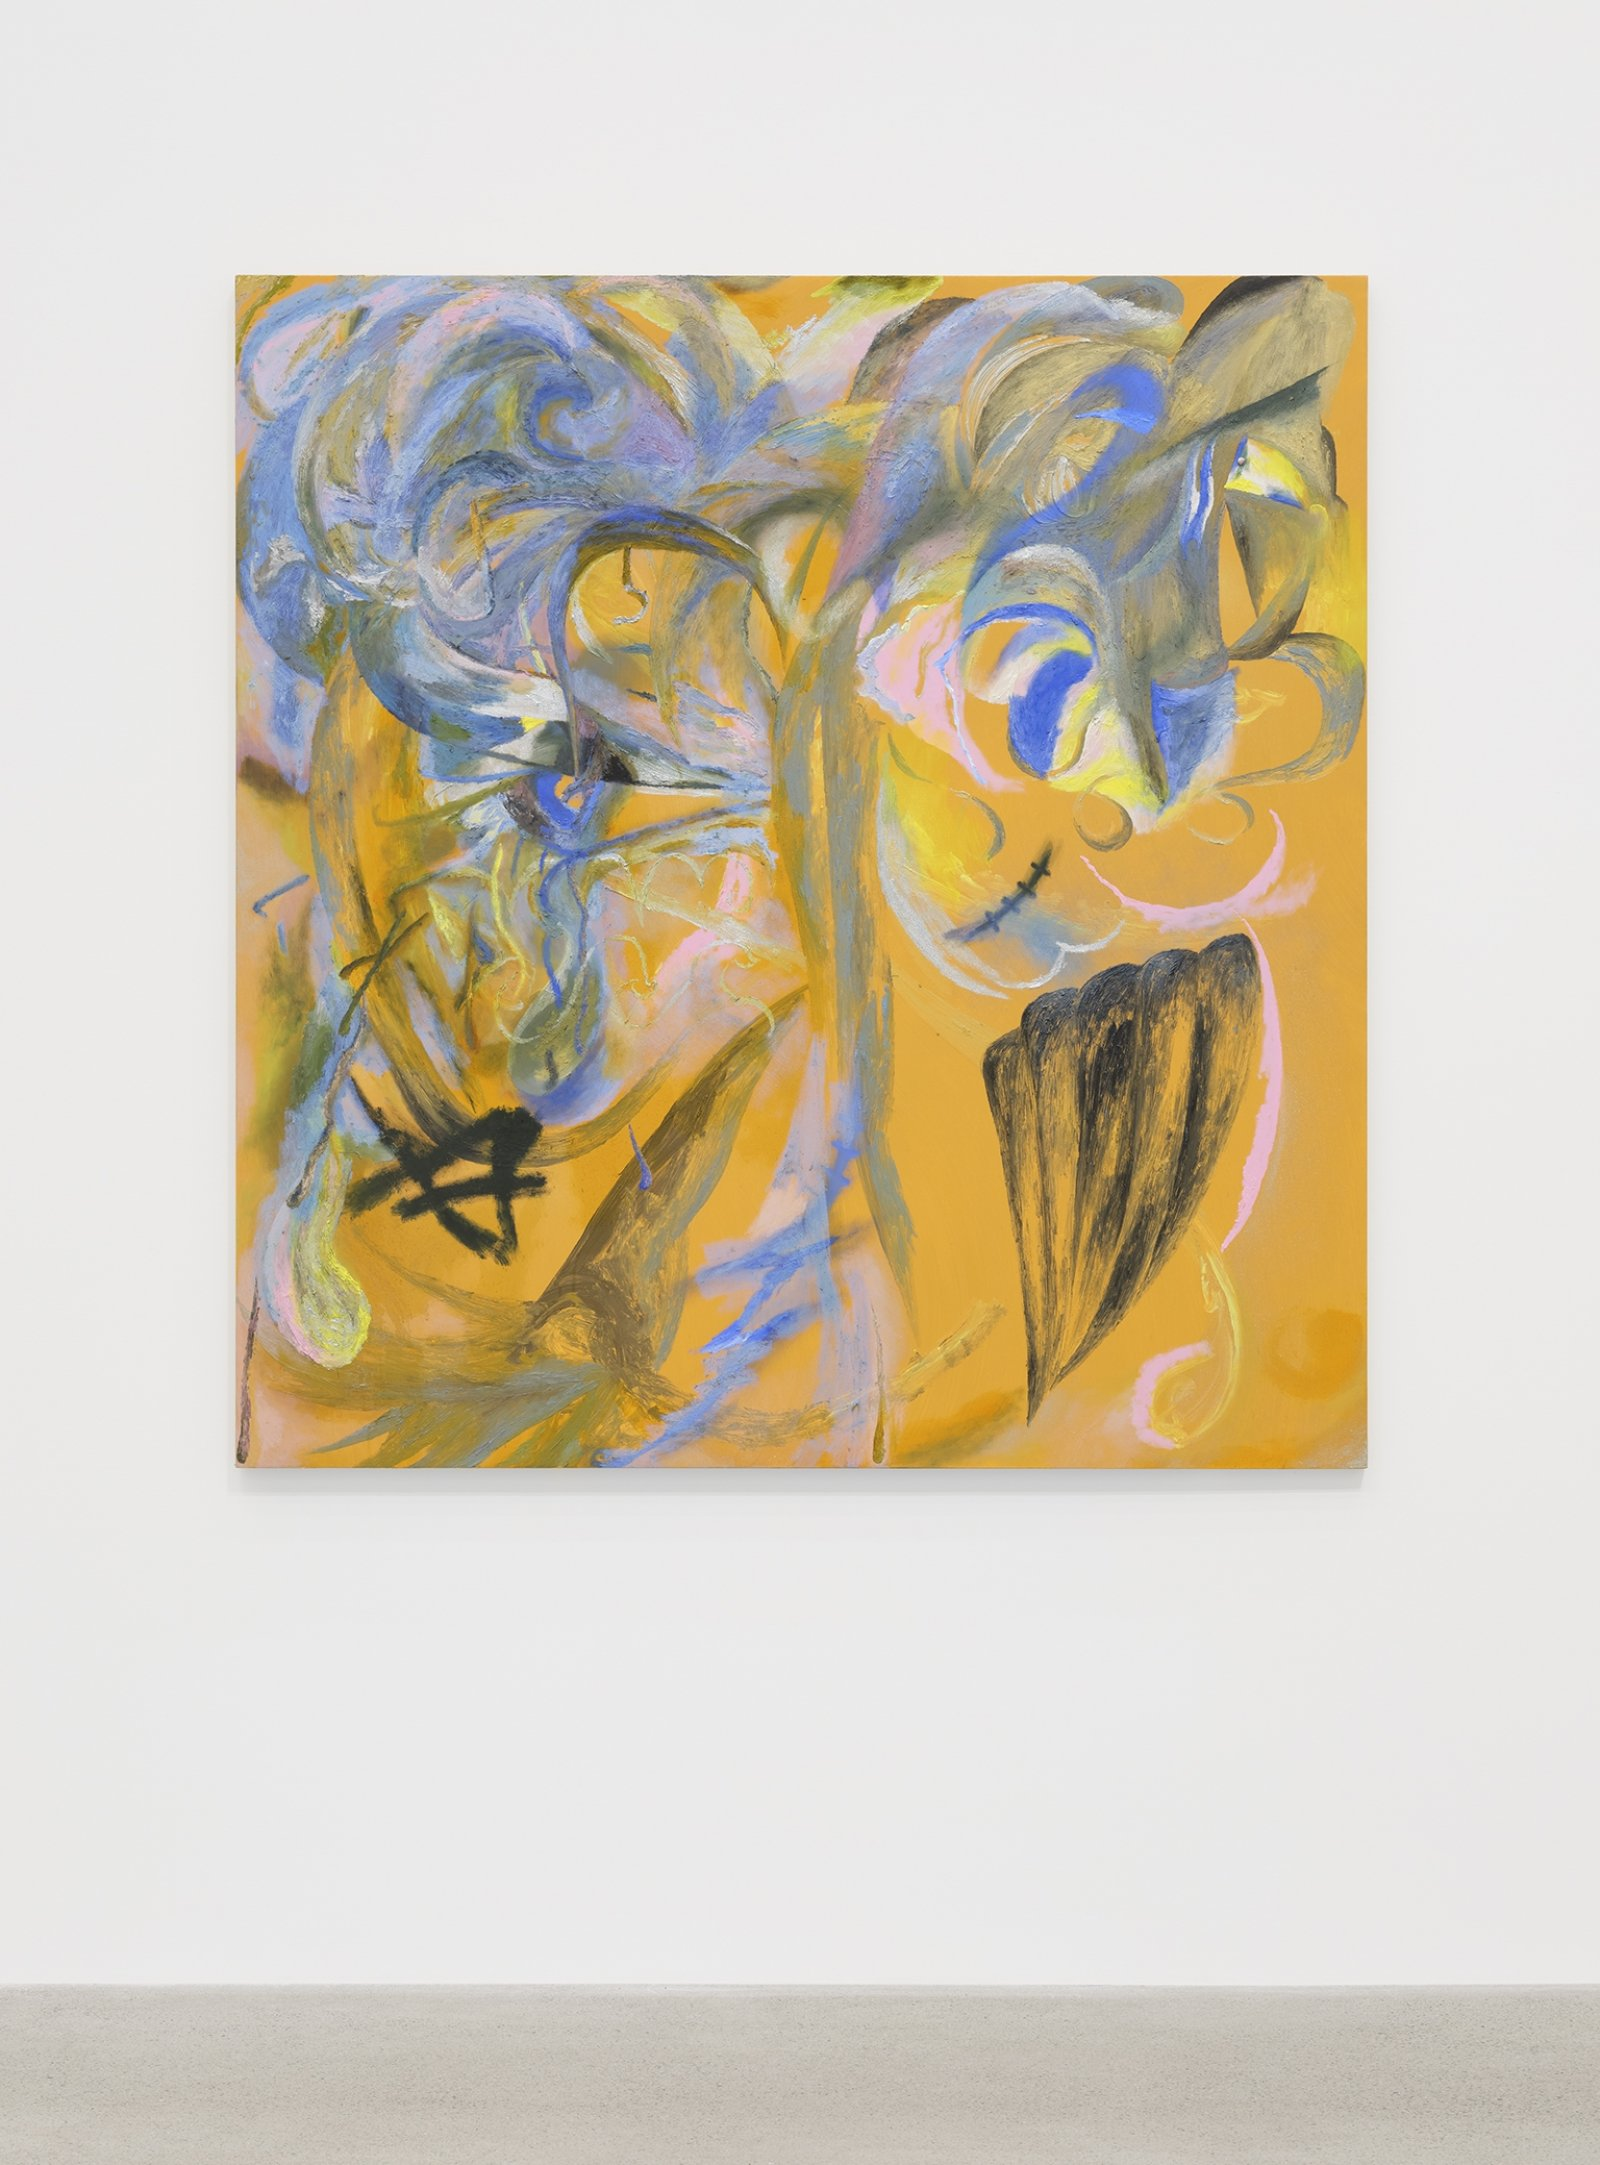 Rebecca Brewer, Twice Exceptional, 2019, oil on wood panel, 60 x 57 in. (152 x 145 cm)